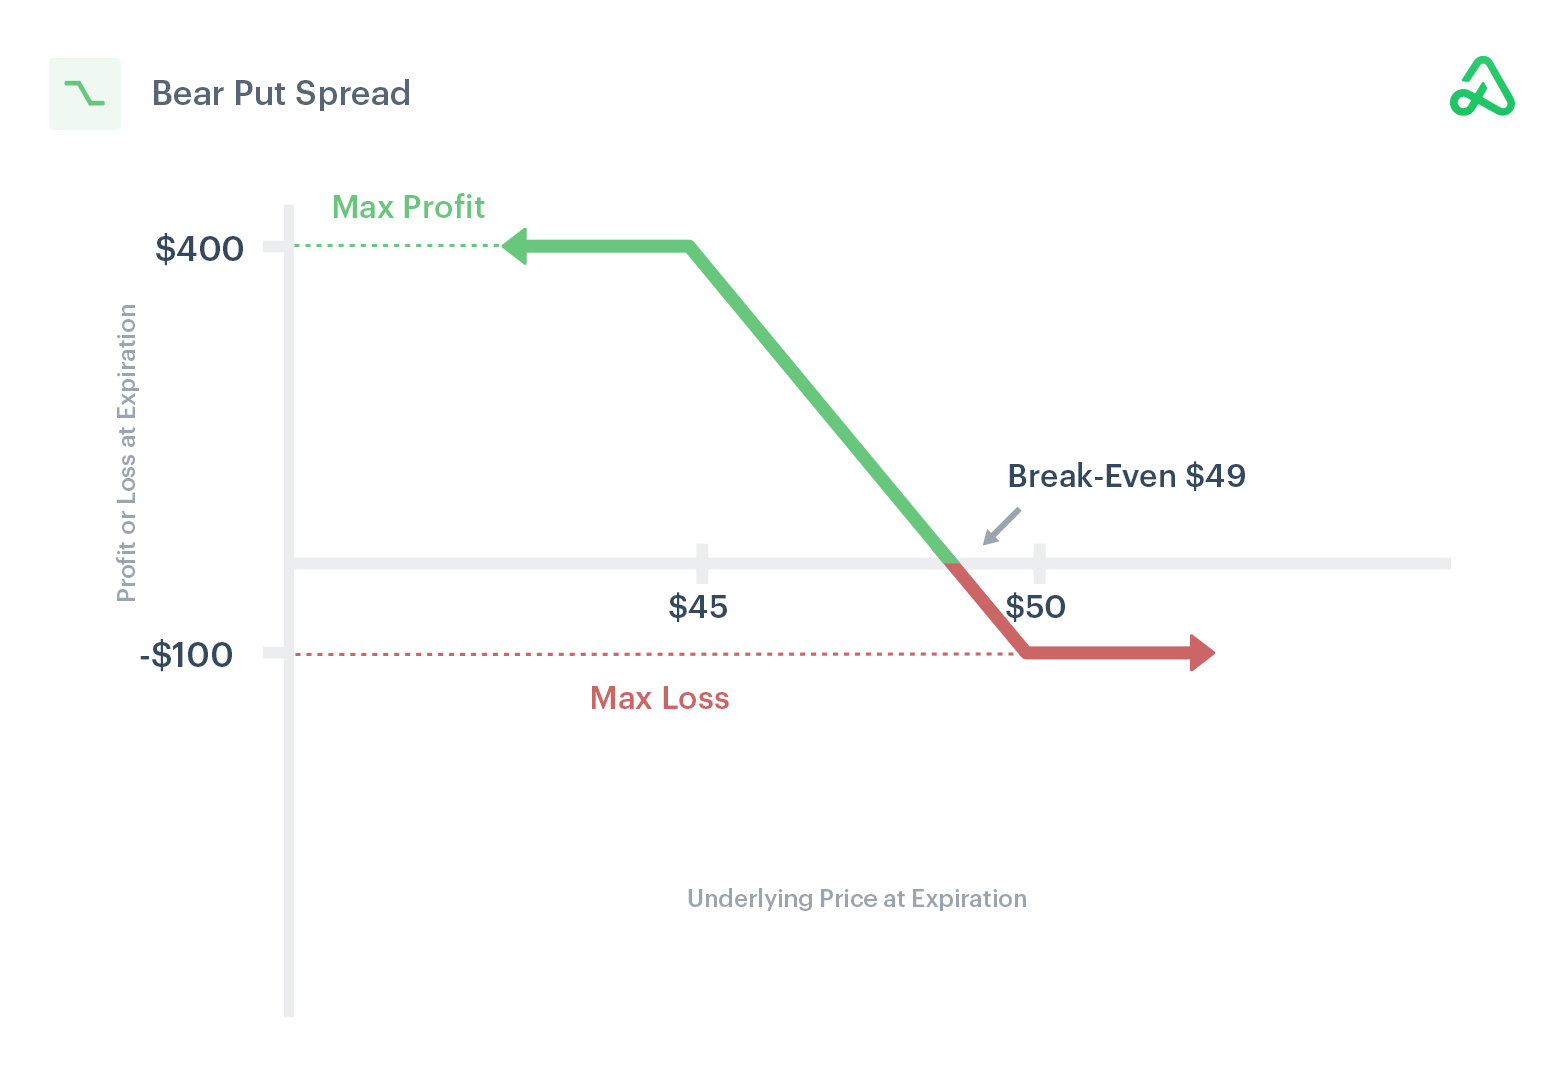 Image of bear put spread payoff diagram showing max profit, max loss, and break-even points